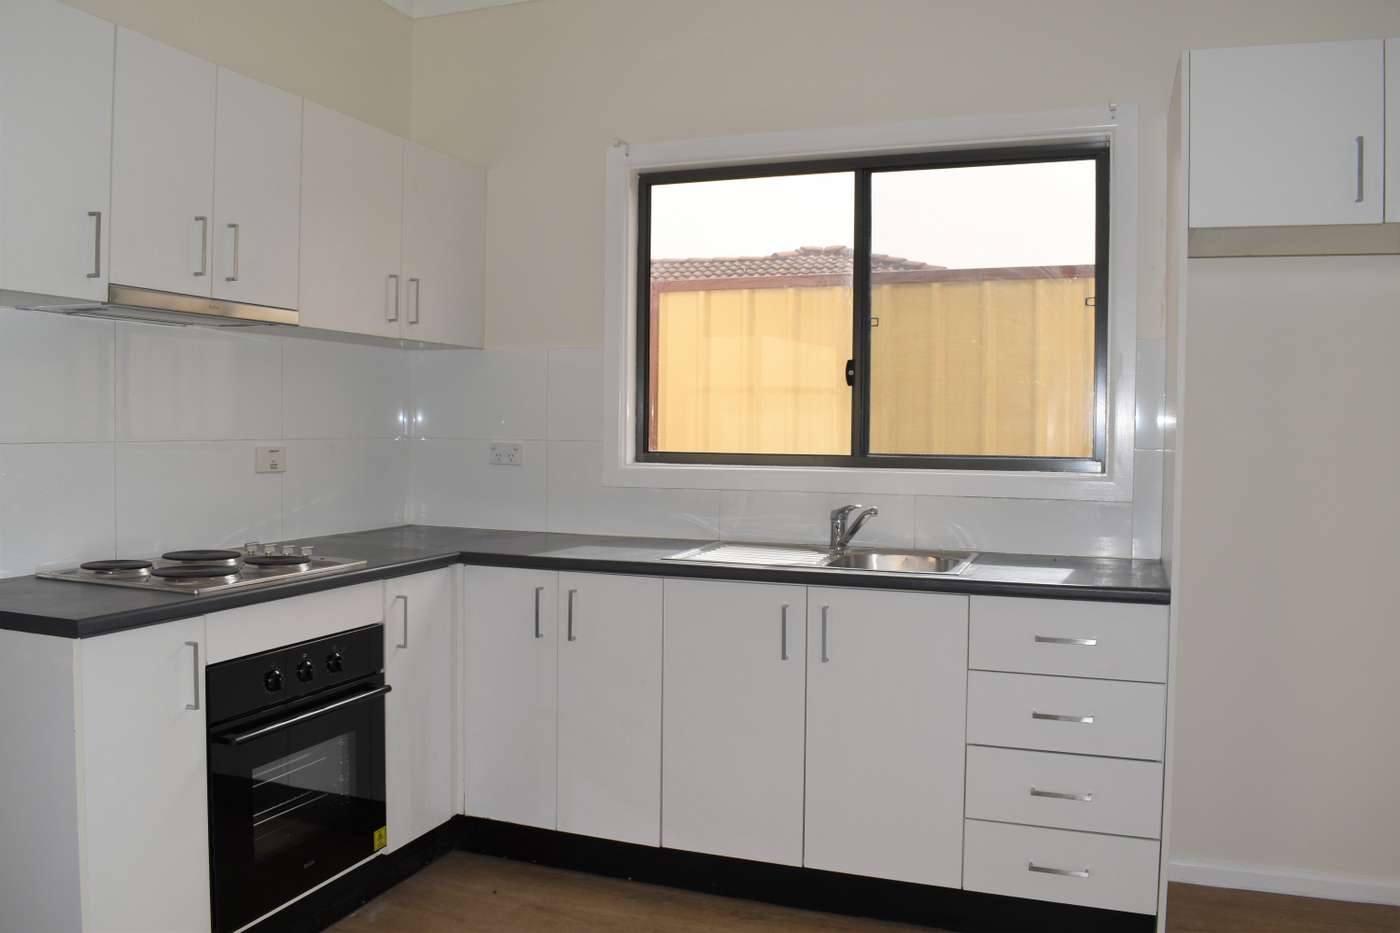 Main view of Homely house listing, 26A Pegasus Street, Erskine Park, NSW 2759